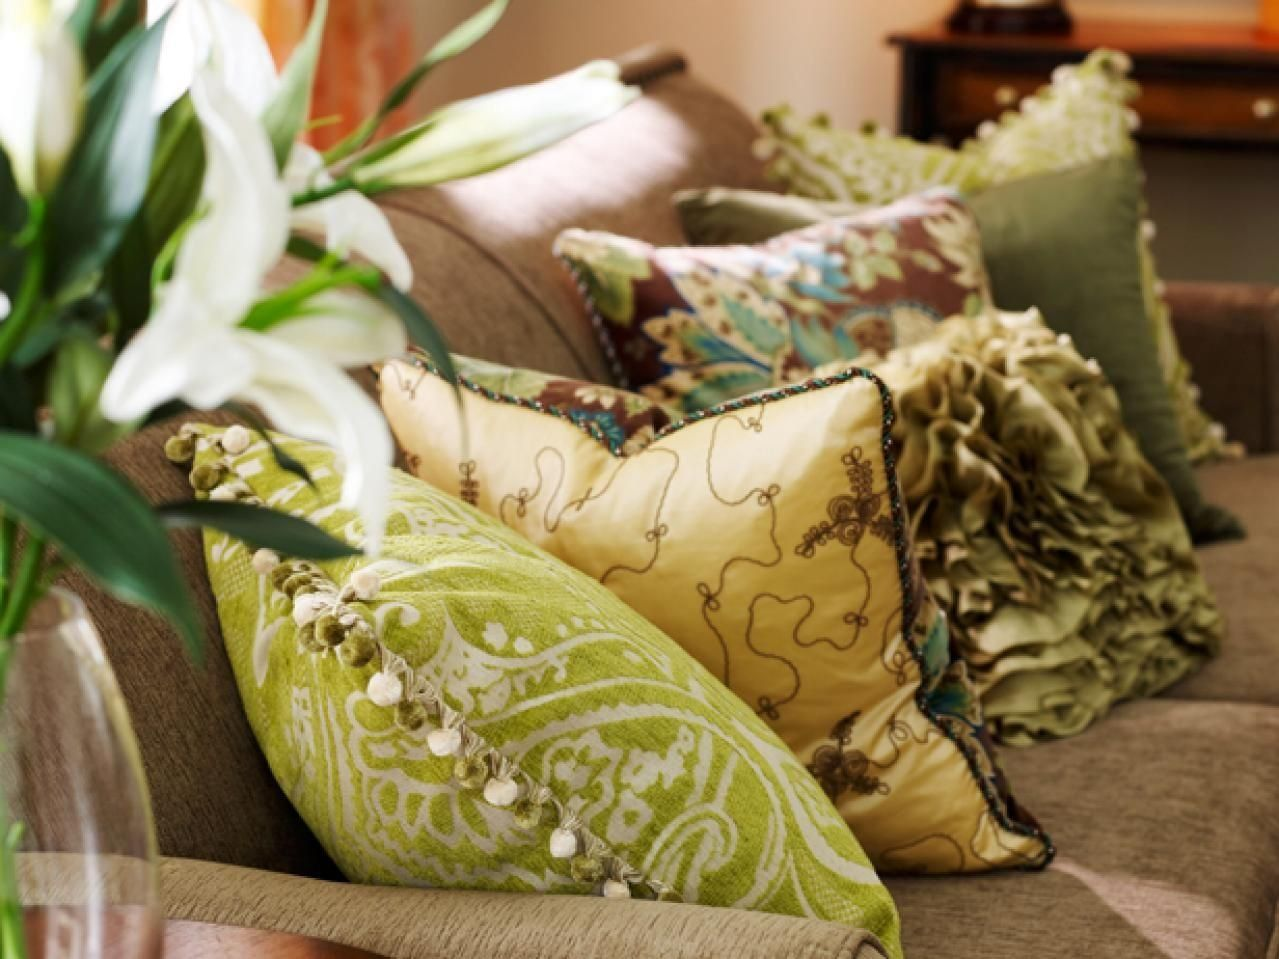 Several Pillows on Couch